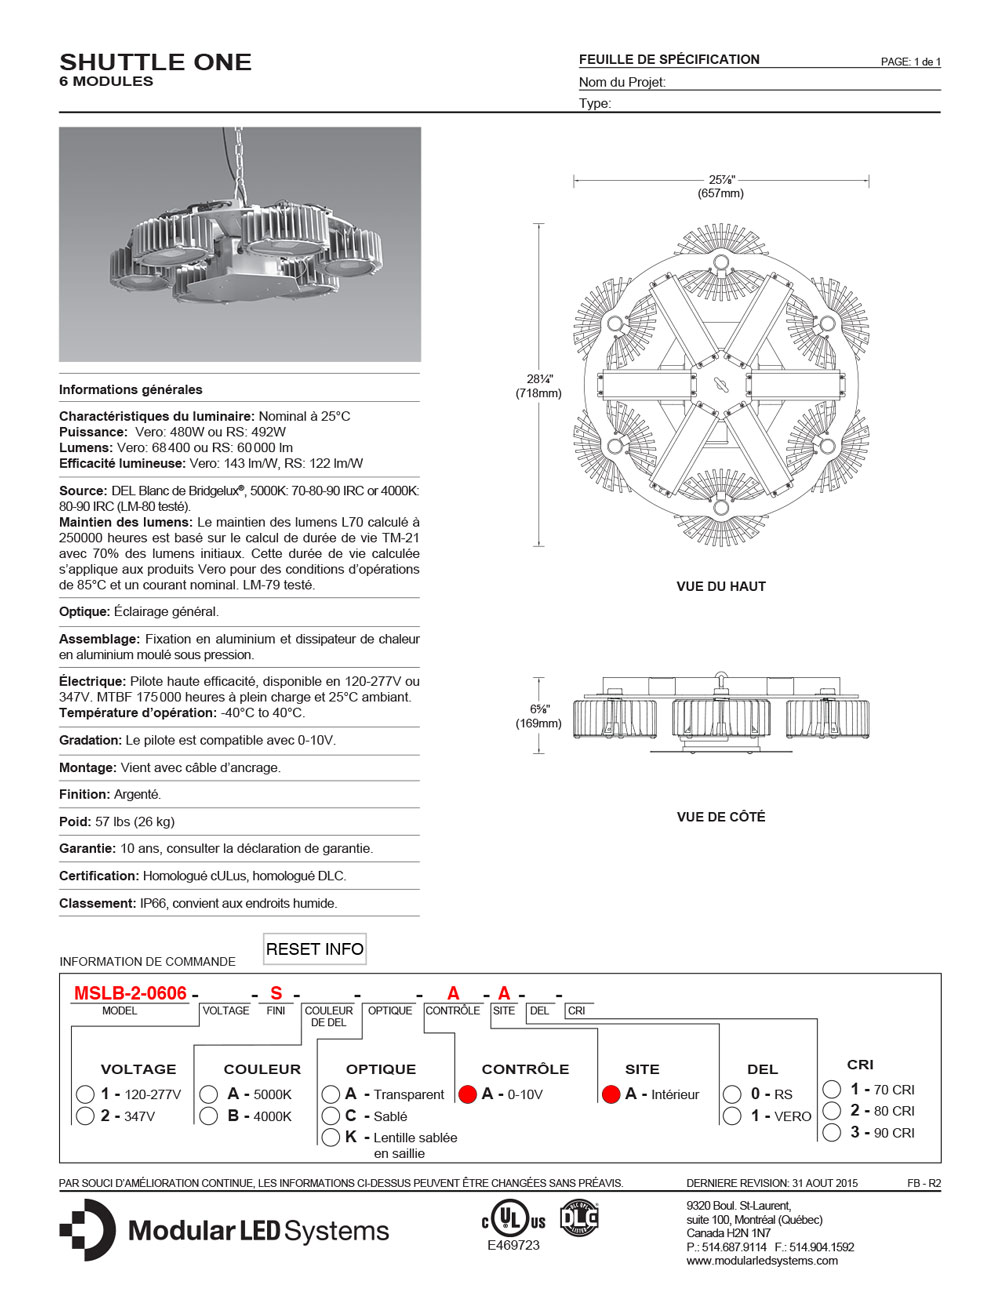 shuttle-one-6-modules_specifications